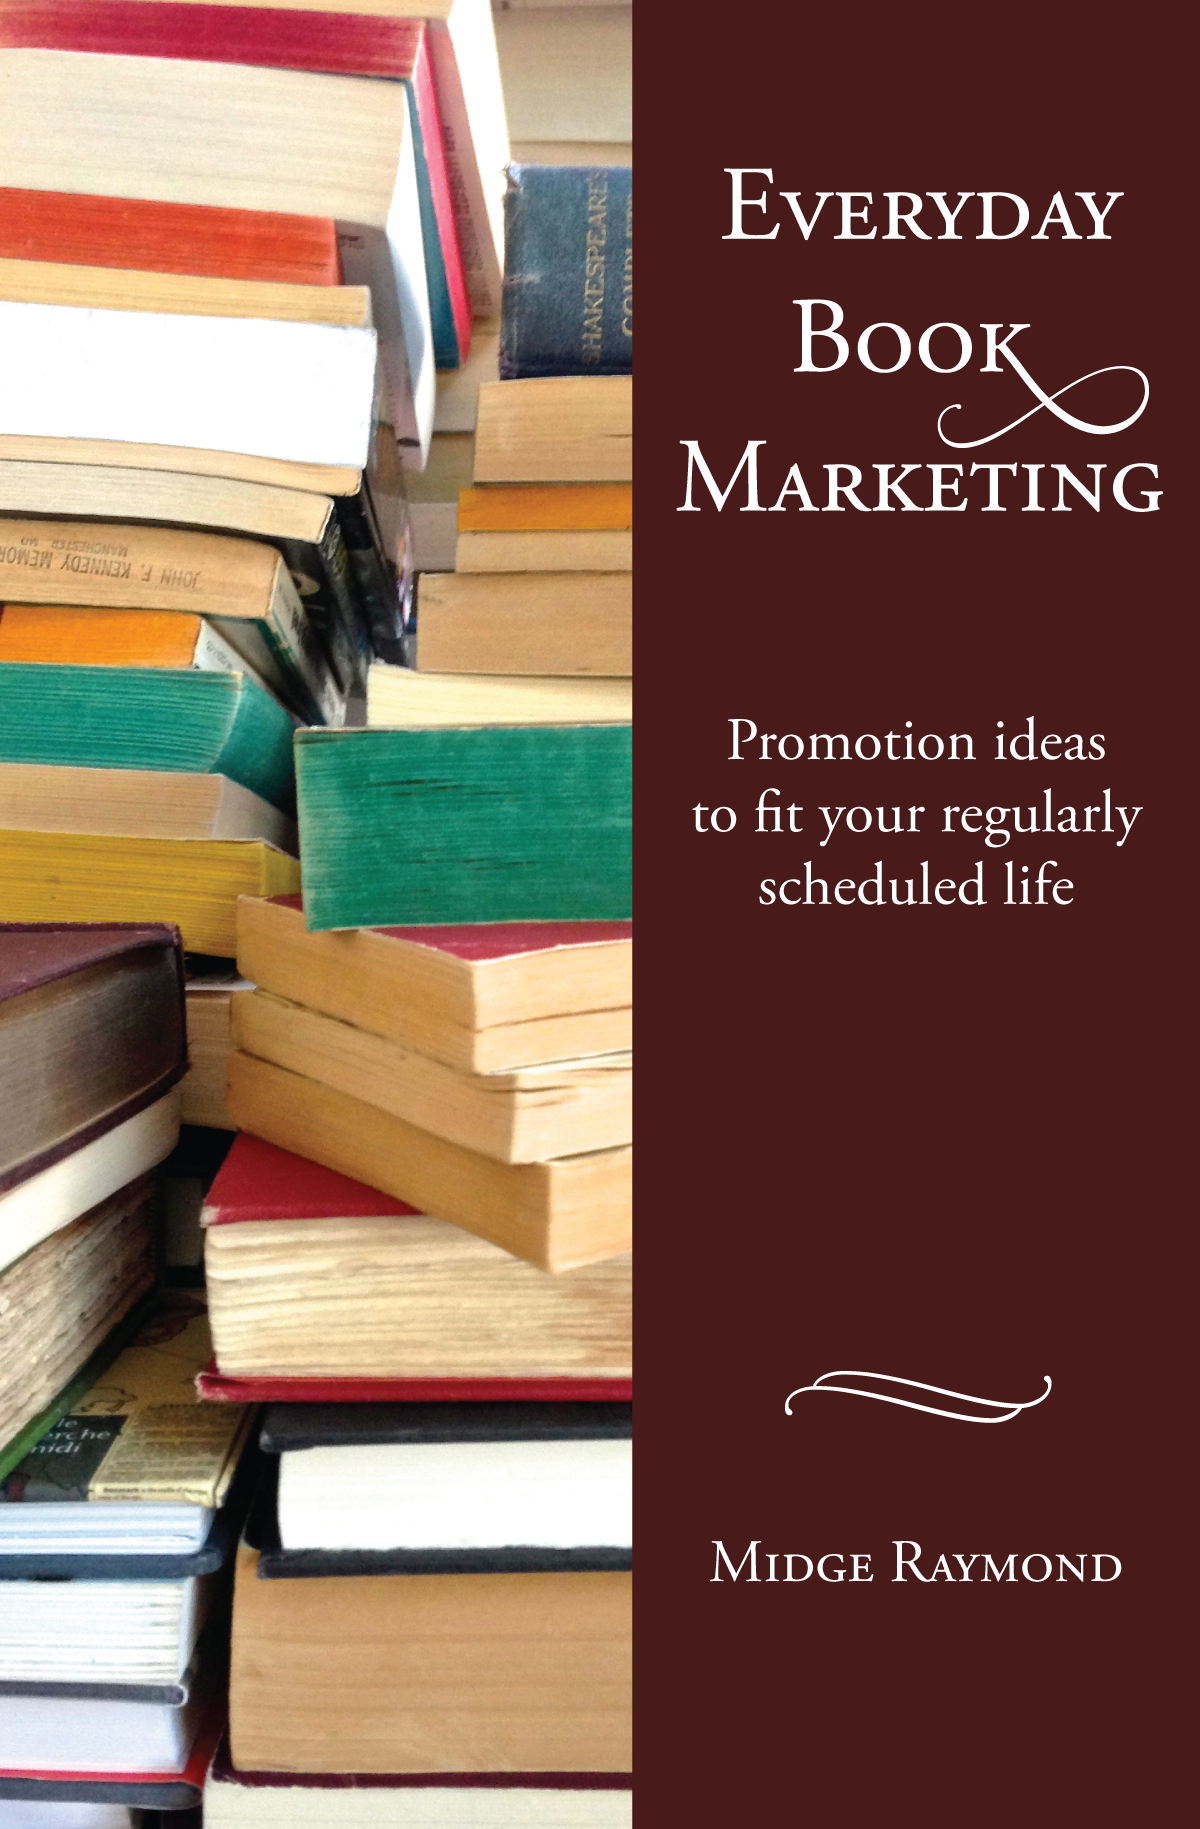 Everyday book marketing promotion ideas to fit your regularly download a high resolution cover image solutioingenieria Choice Image